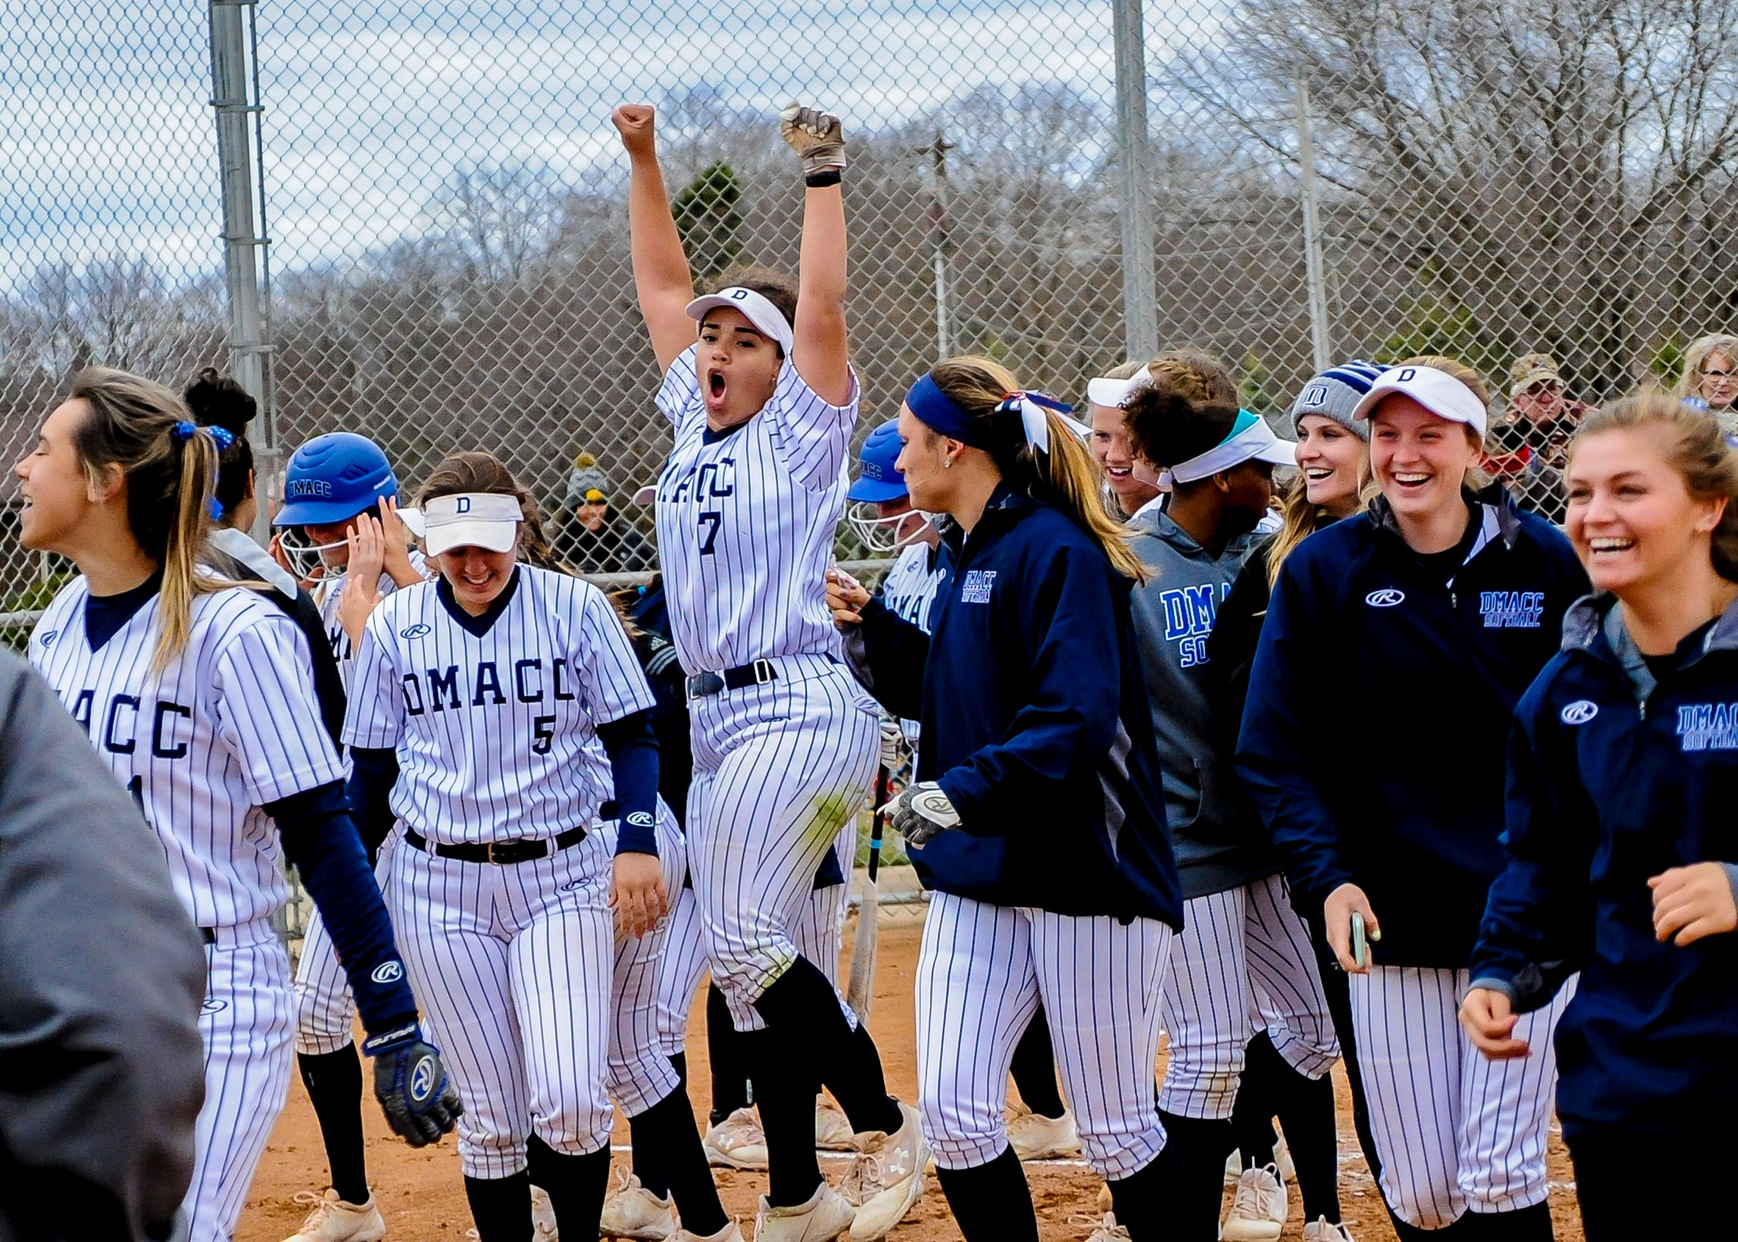 DMACC softball team sweeps doubleheader from KCC in matchup of ranked teams